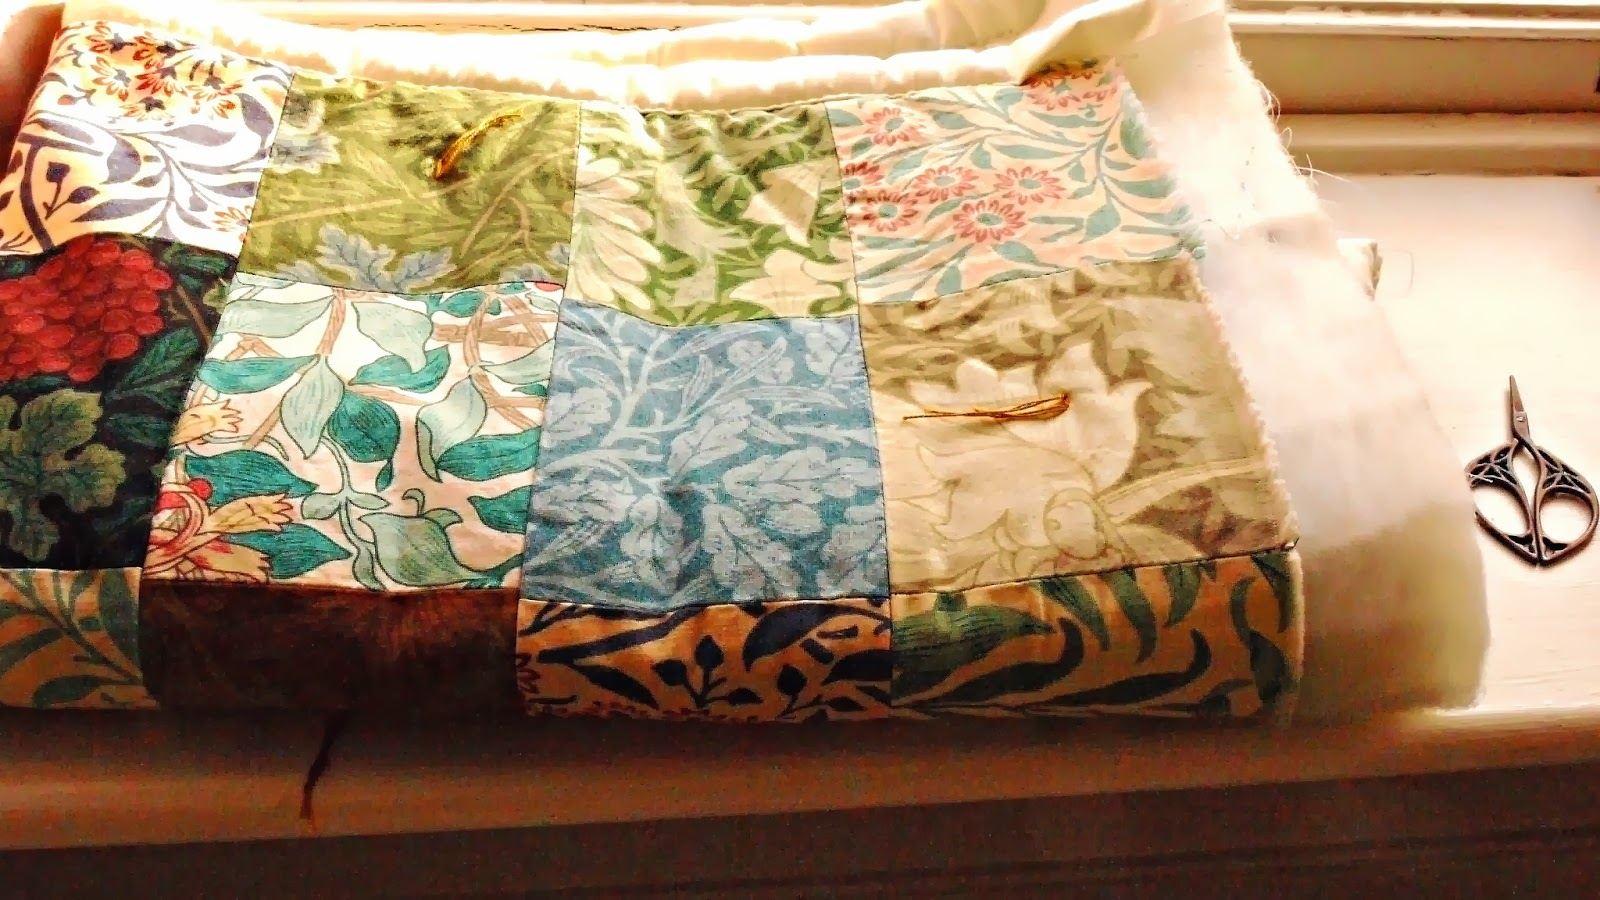 Porcupine Design: My William Morris Quilt Made From A Wallpaper ...